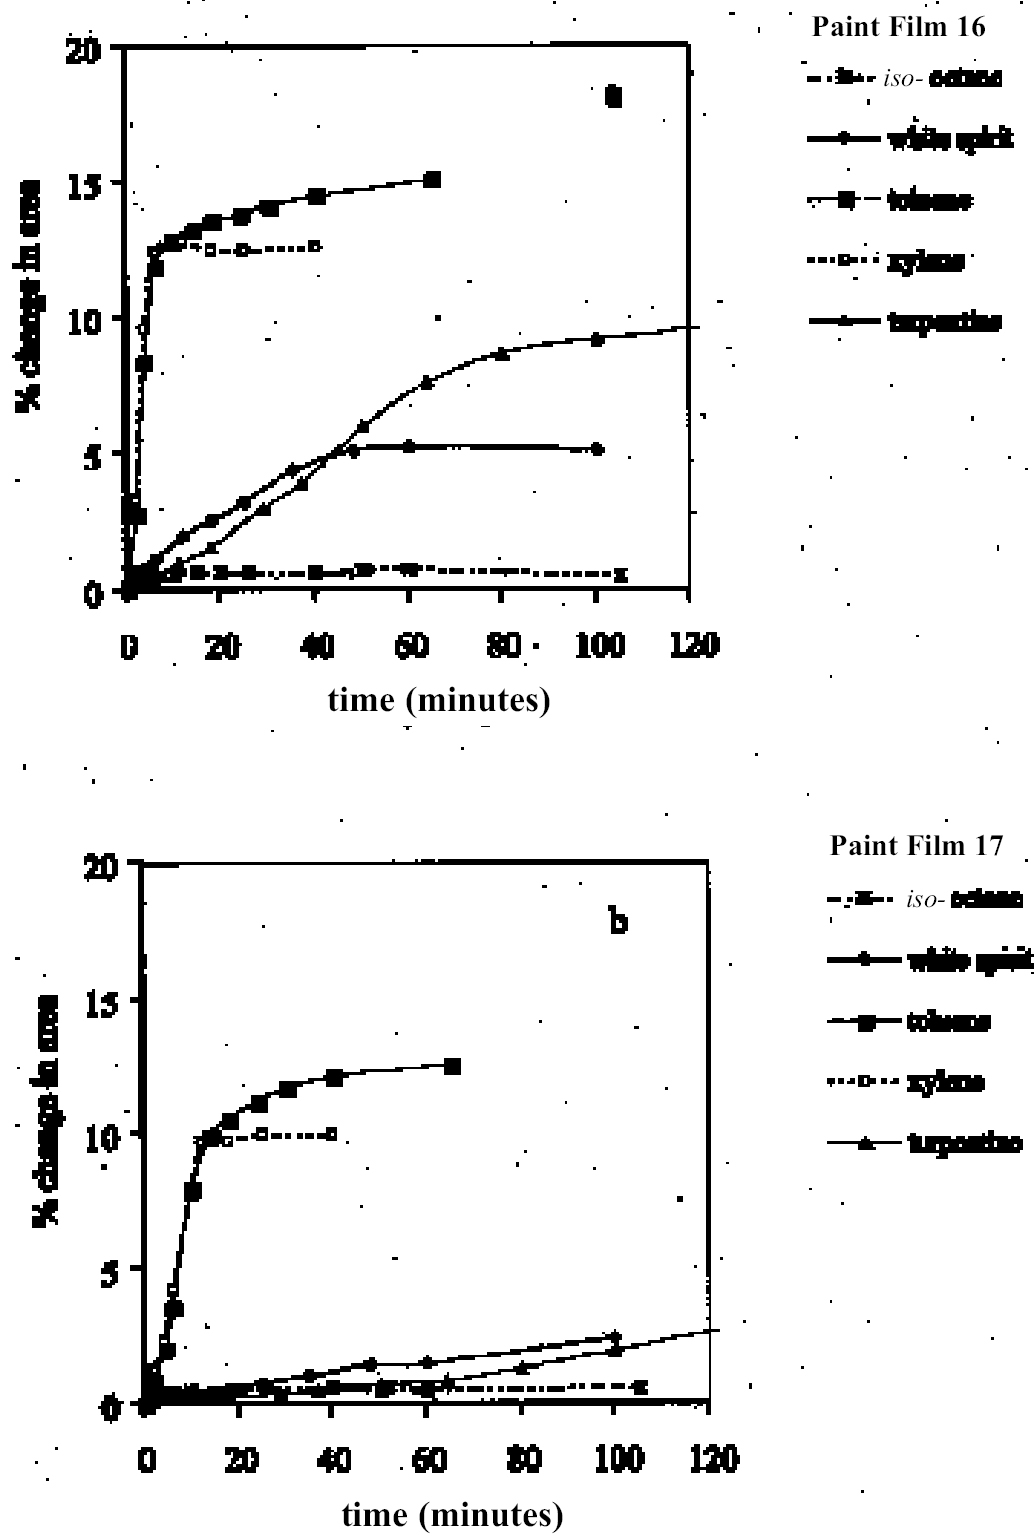 Jaic 2002 Volume 41 Number 1 Article 5 Pp 61 To 90 Iso Mass Extreme Effect Fig 2